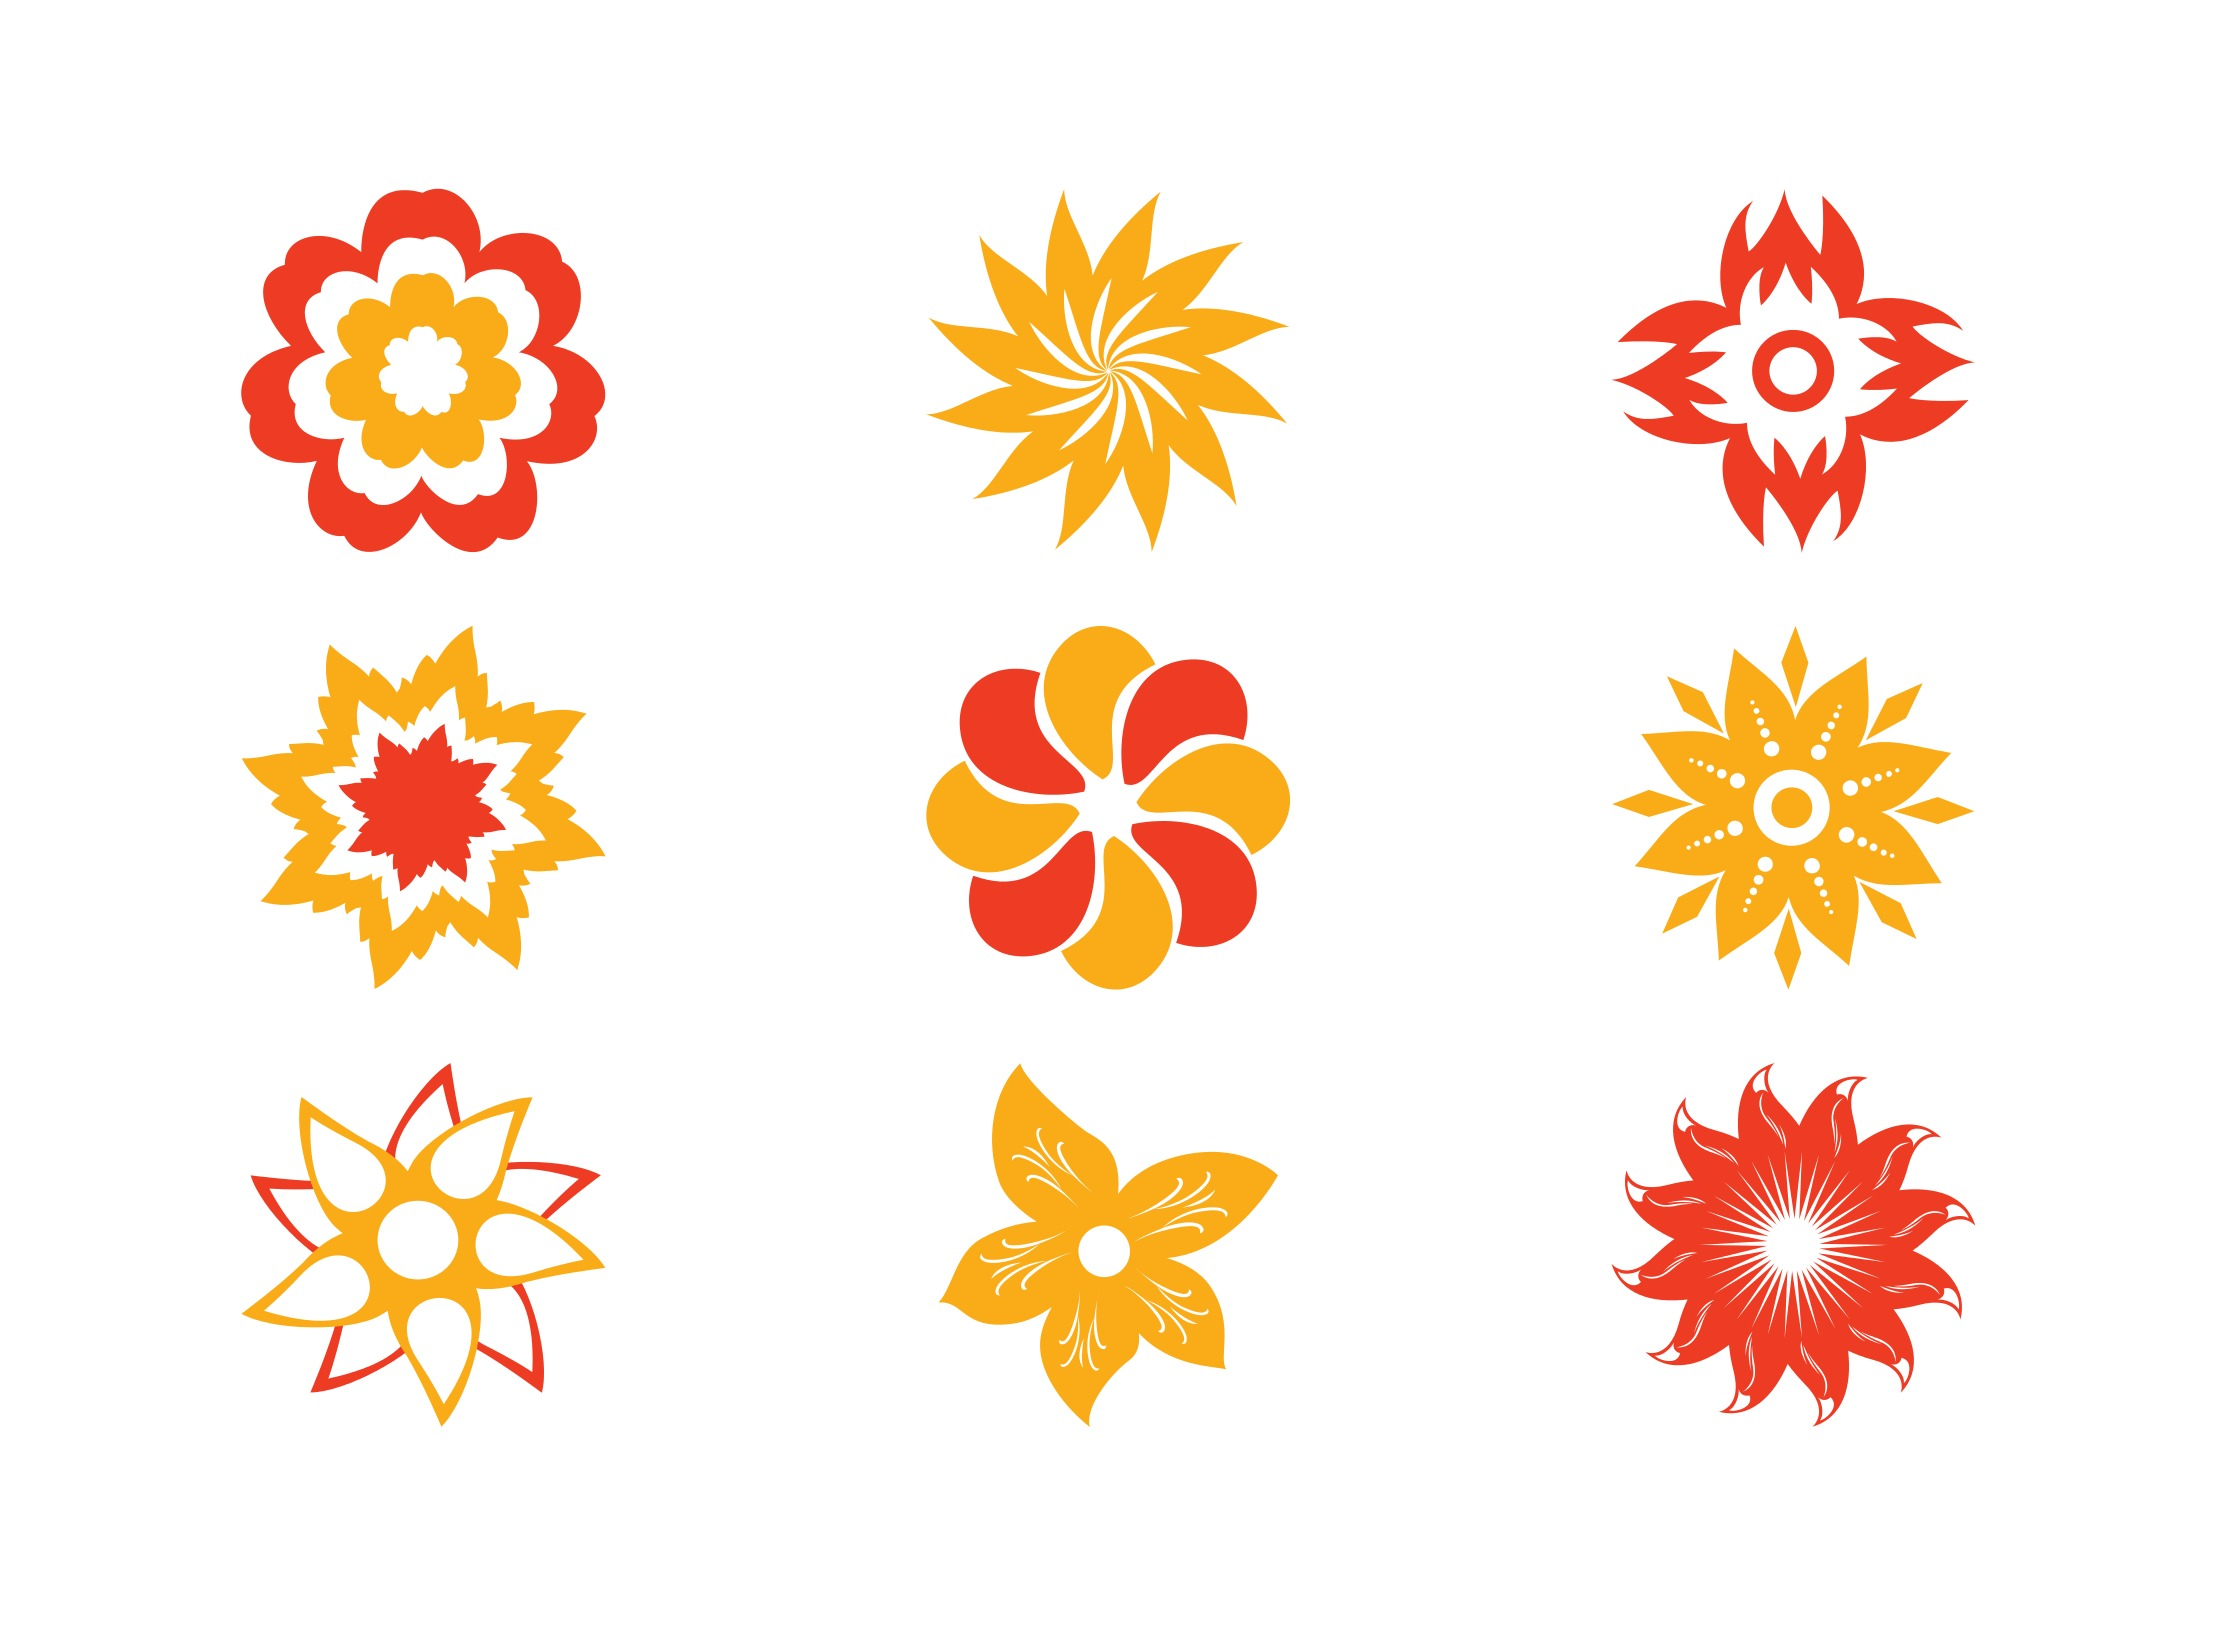 stylized flower blossoms set download free vector art